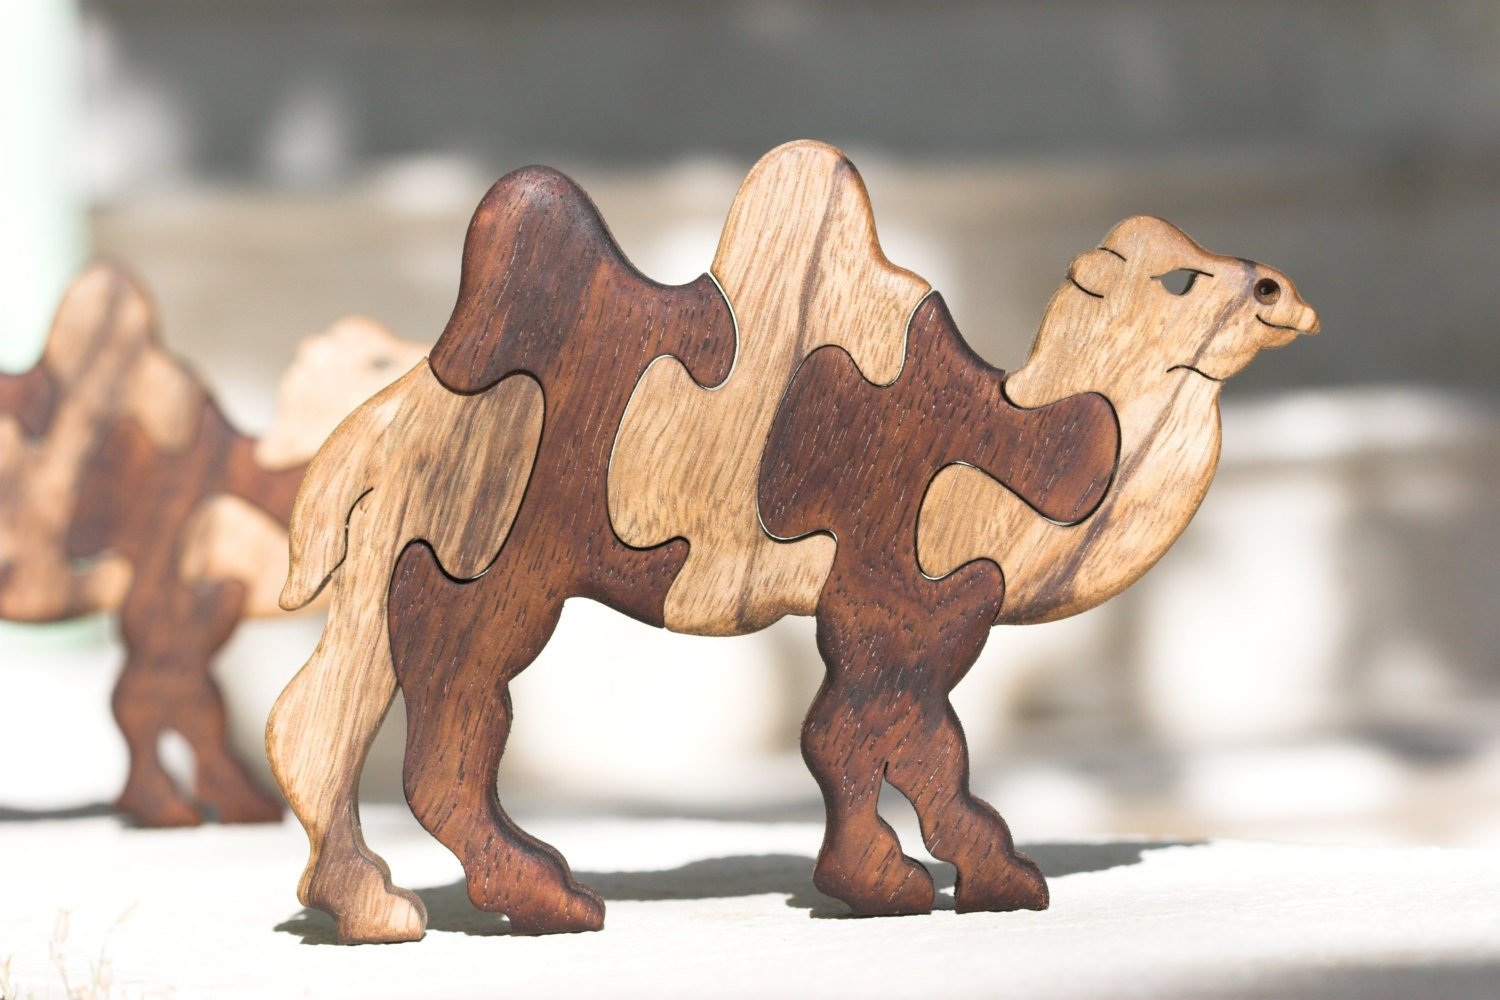 Camel, puzzle, wooden camel puzzle, jigsaw puzzle, handmade, wood puzzle, wood toy, wooden animal puzzle, solid wood, scroll saw, toy, game.